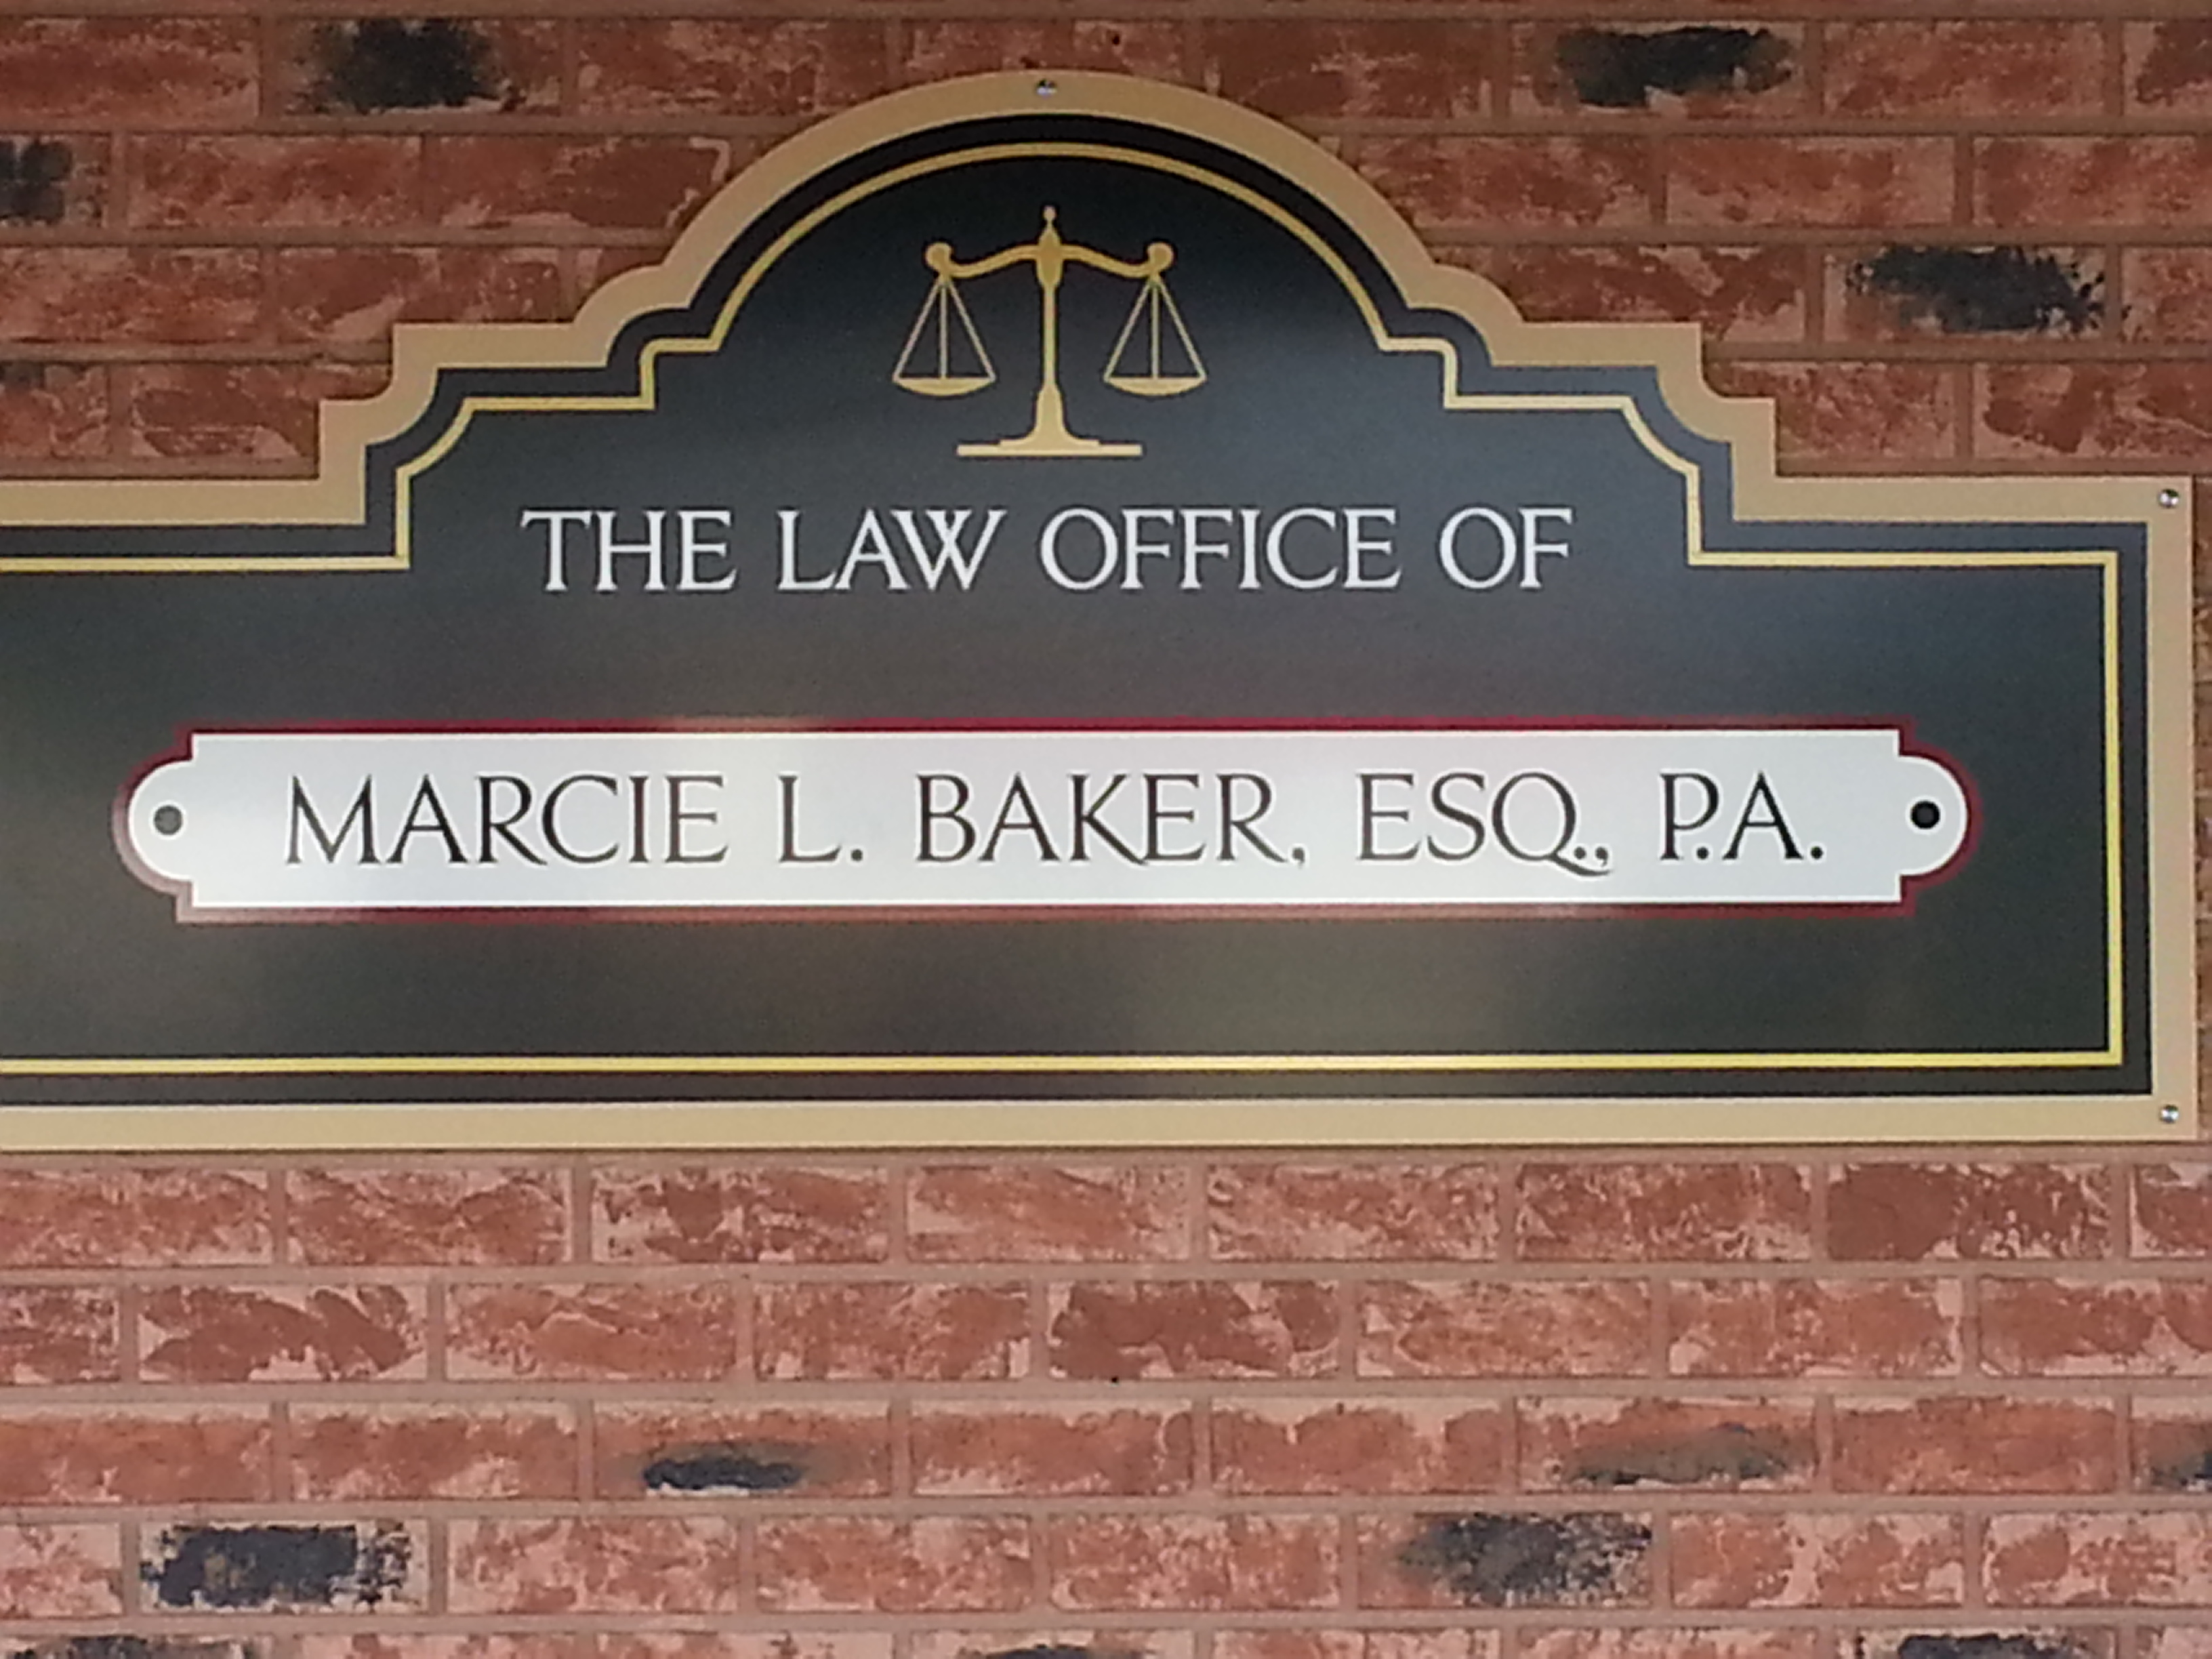 The Law Office Of Marcie L. Baker, Esq., P.A. image 1